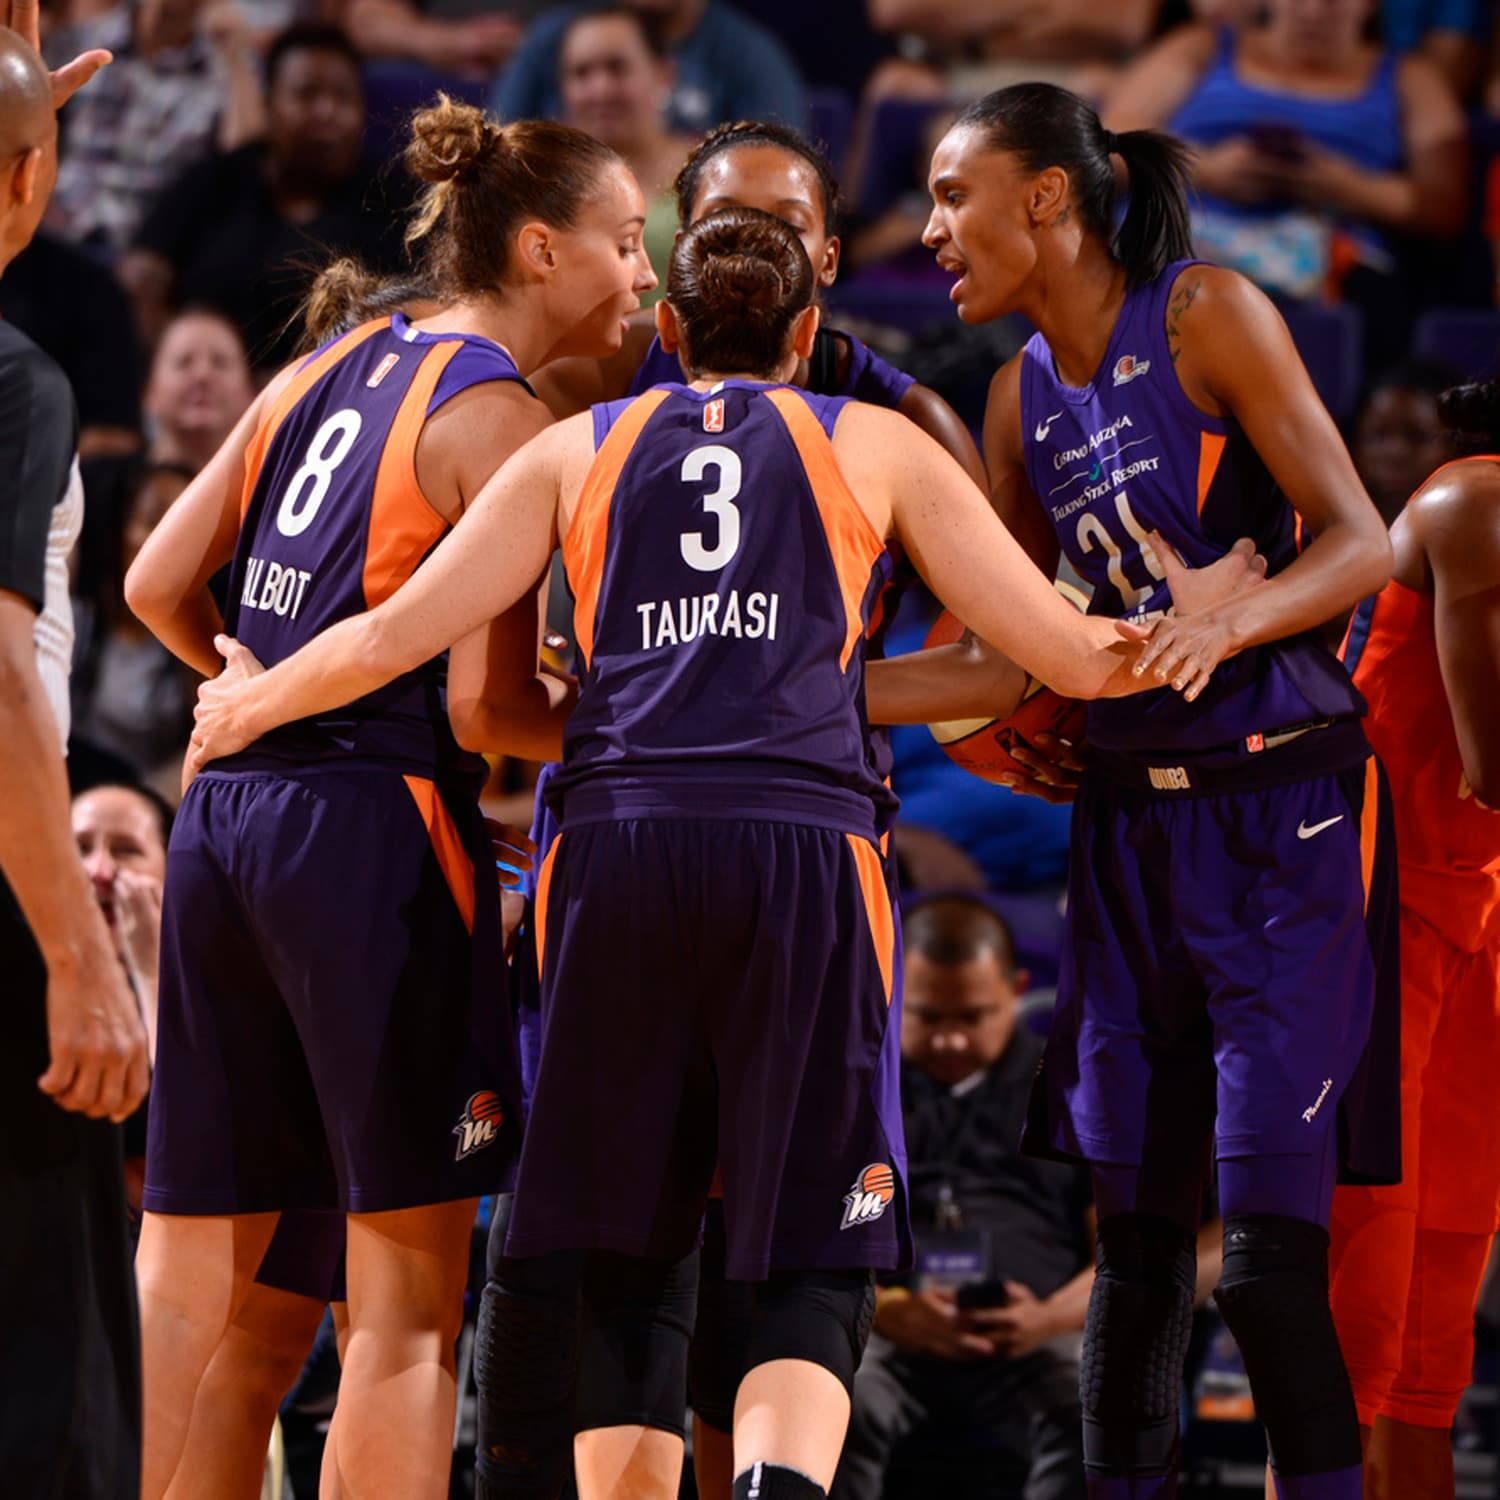 Diana Taurasi leads her team